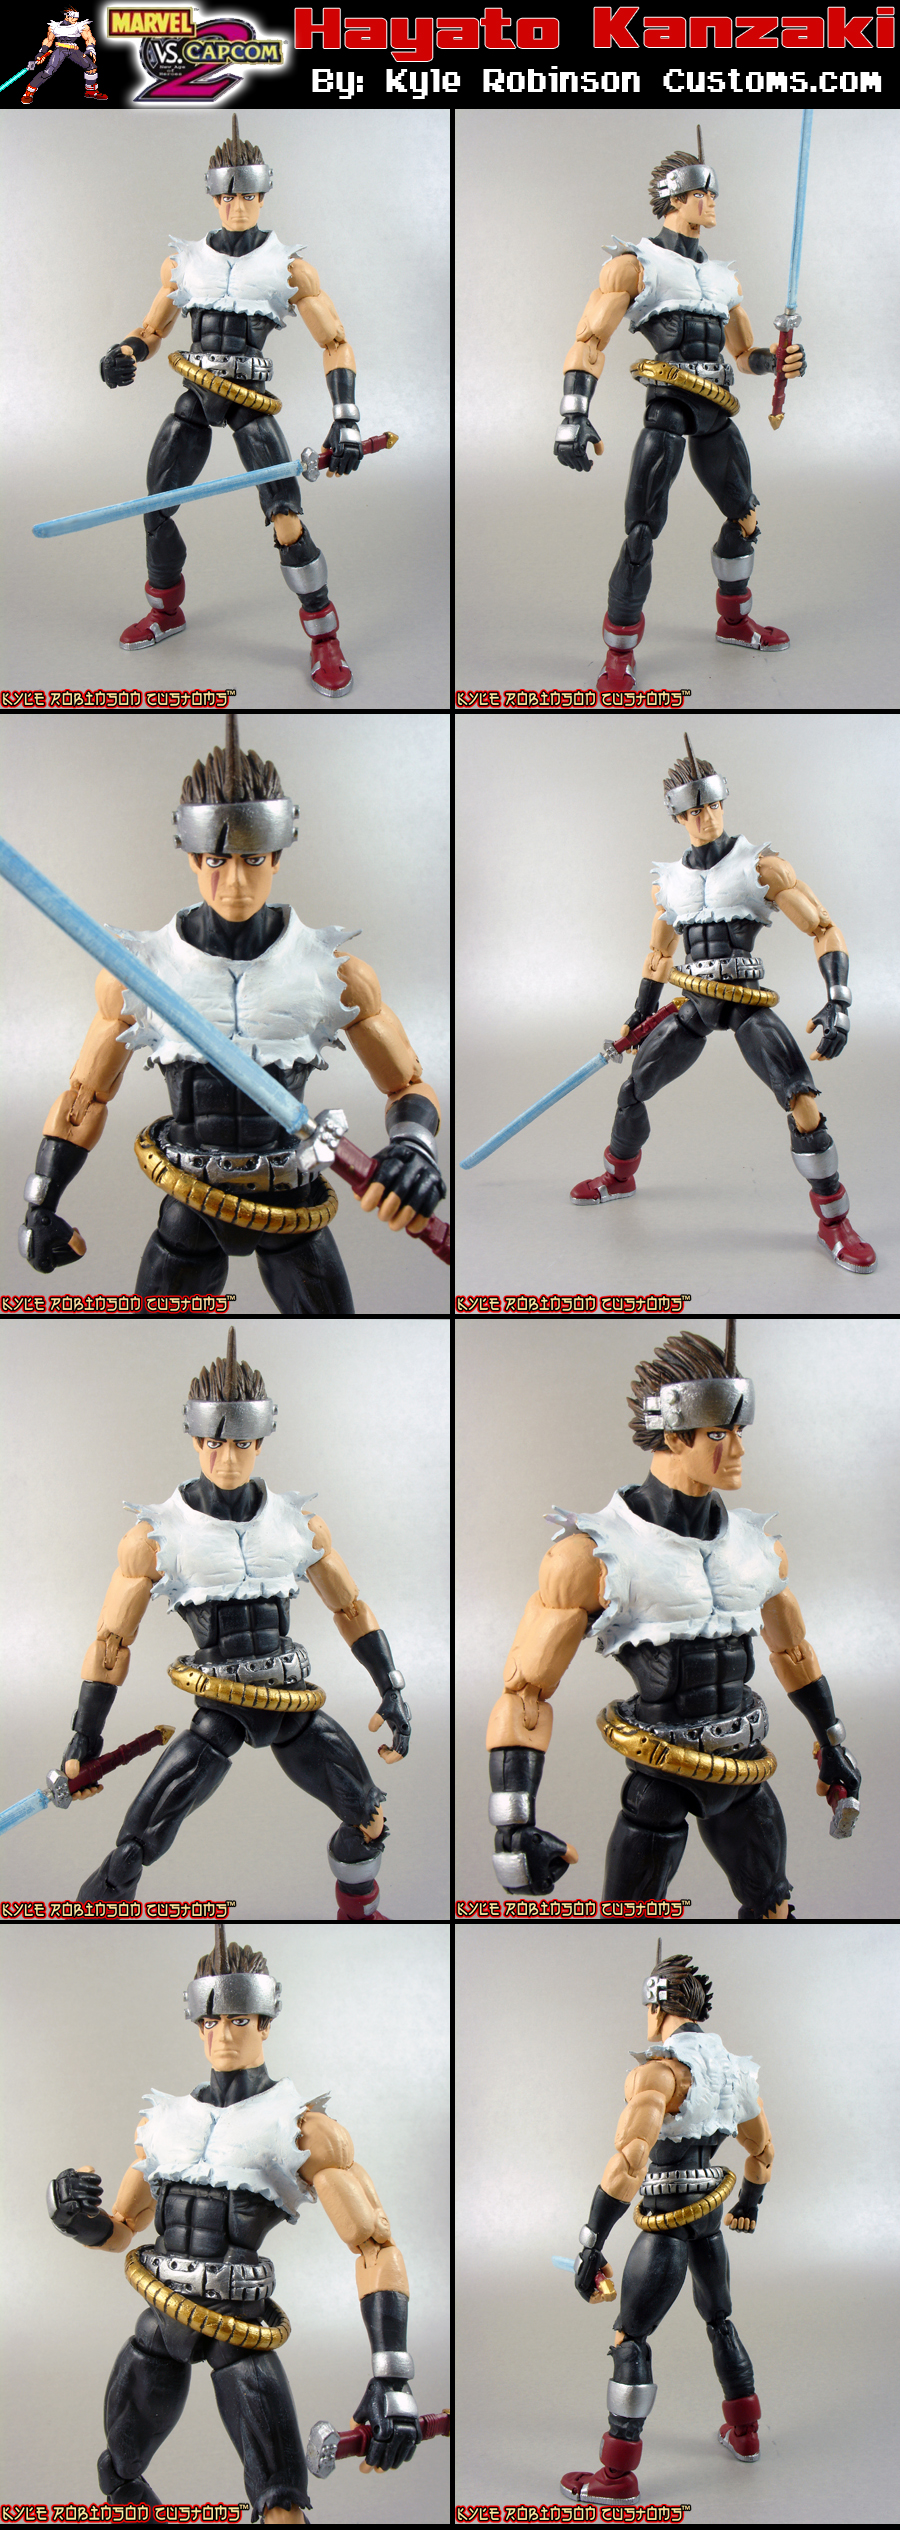 Custom MvsC Hayato Kanzaki by KyleRobinsonCustoms